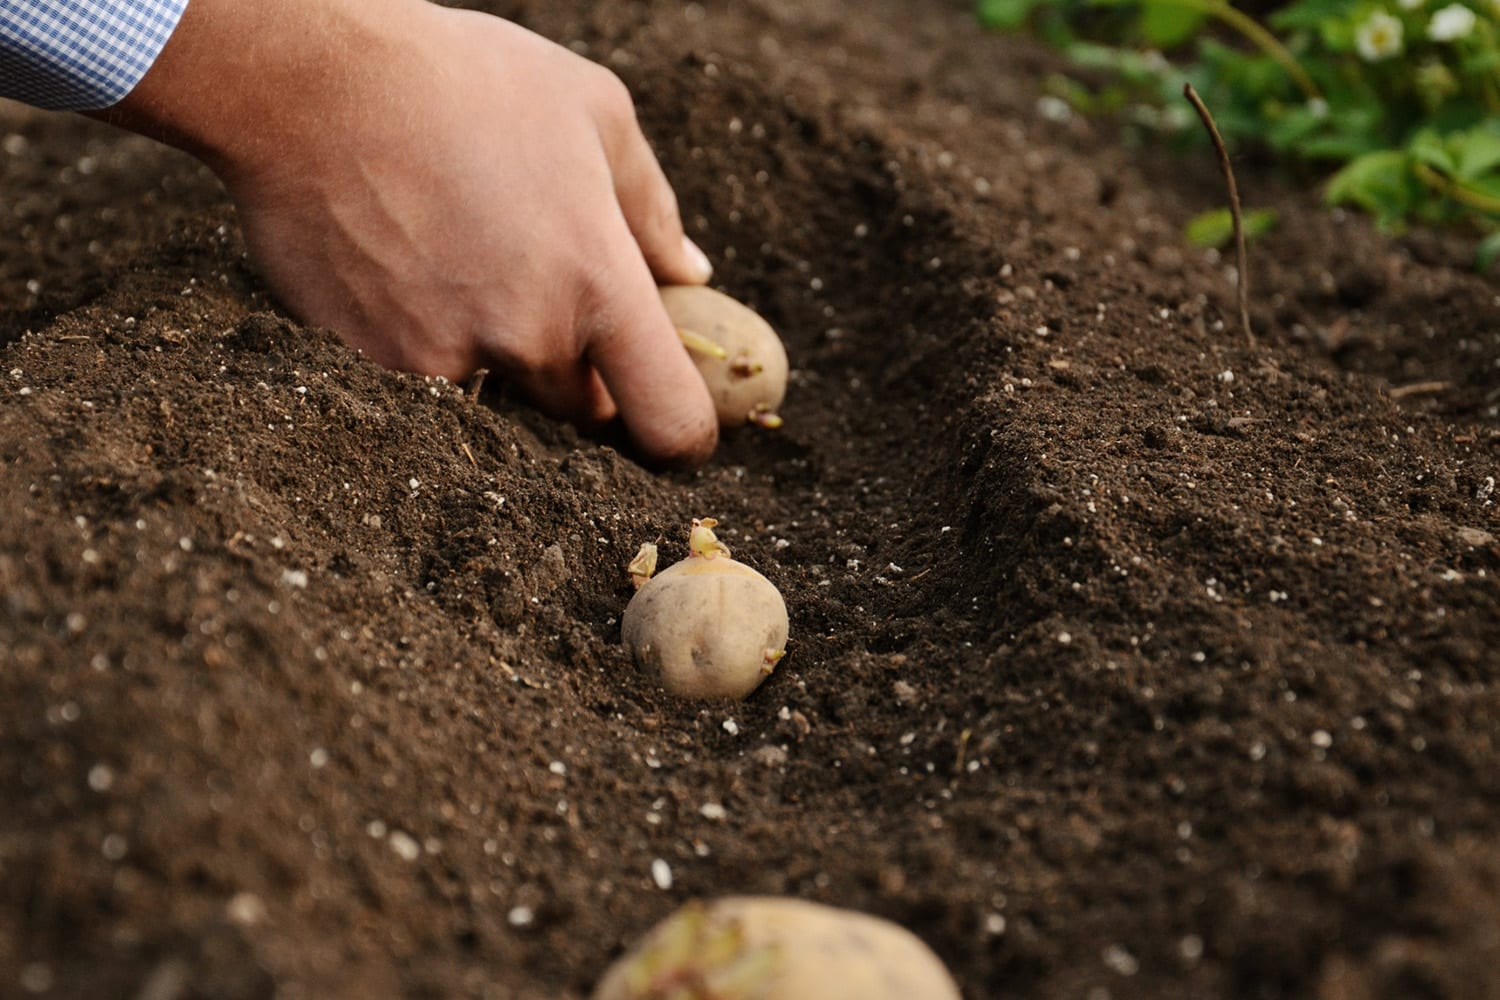 IPM Potato Group markets and distributes seed potatoes in almost every continent